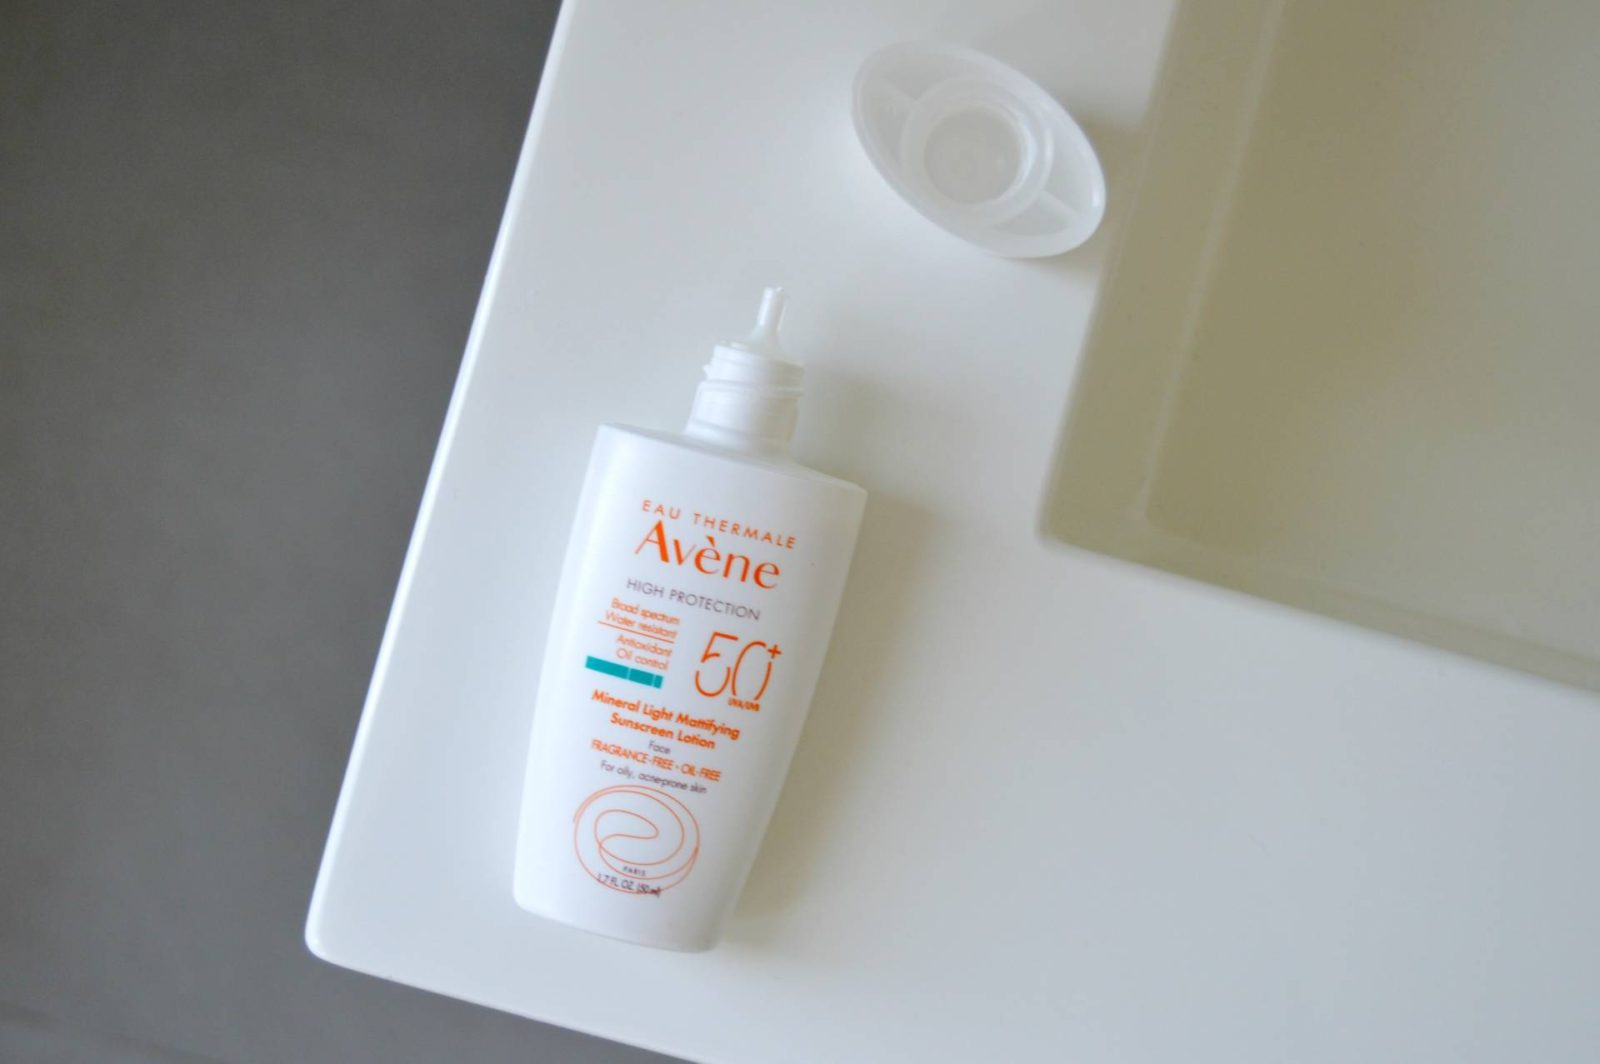 Spring Ready with Avène ft. the NEW Mattifying Sunscreen SPF 50+